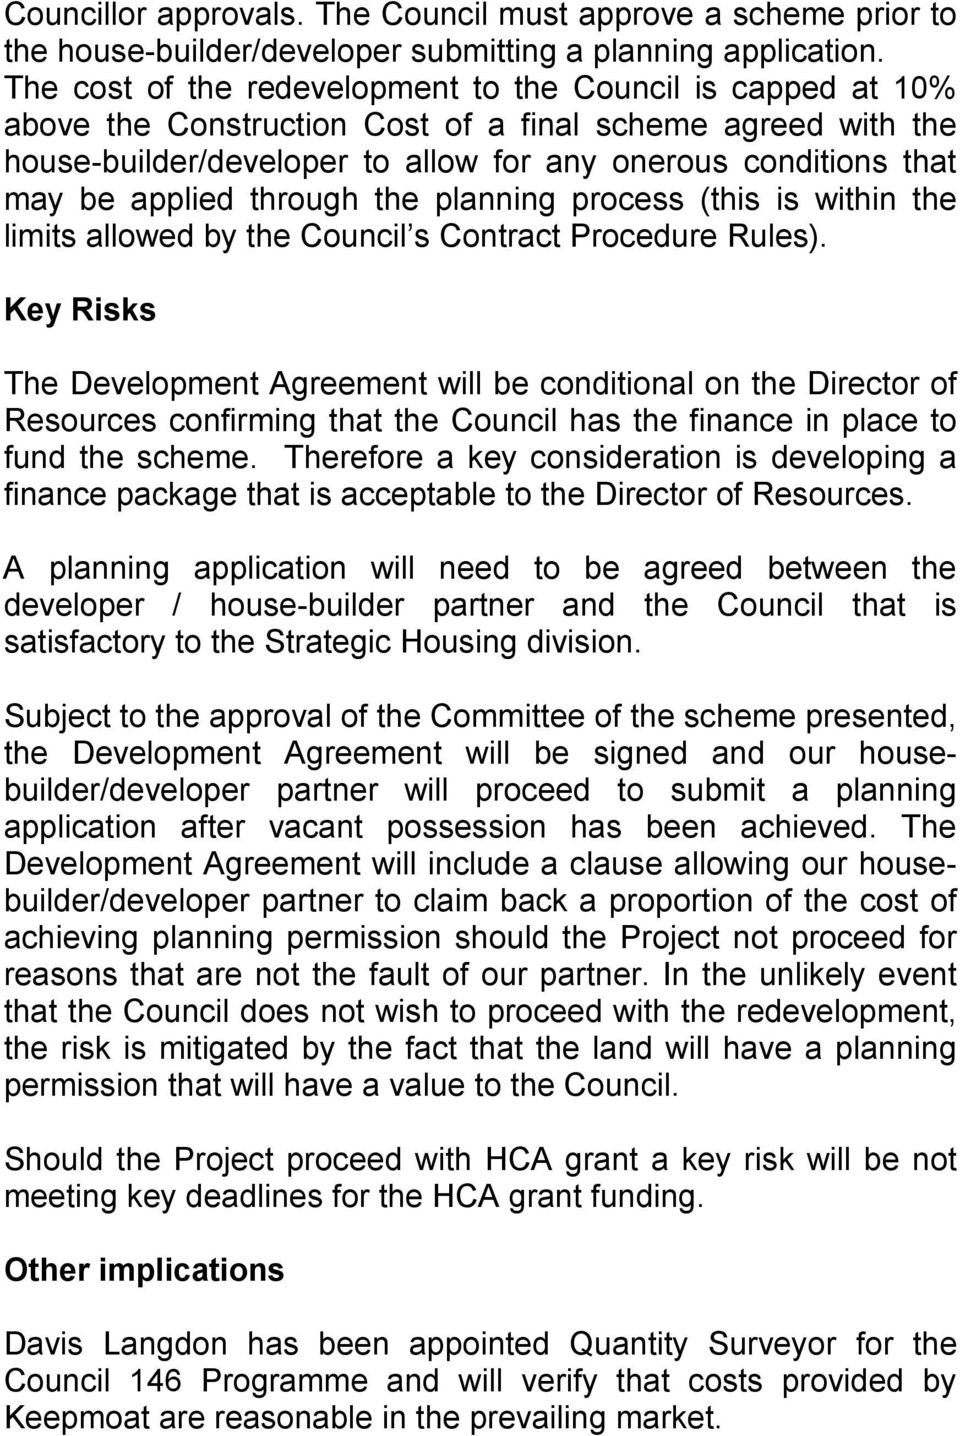 applied through the planning process (this is within the limits allowed by the Council s Contract Procedure Rules).